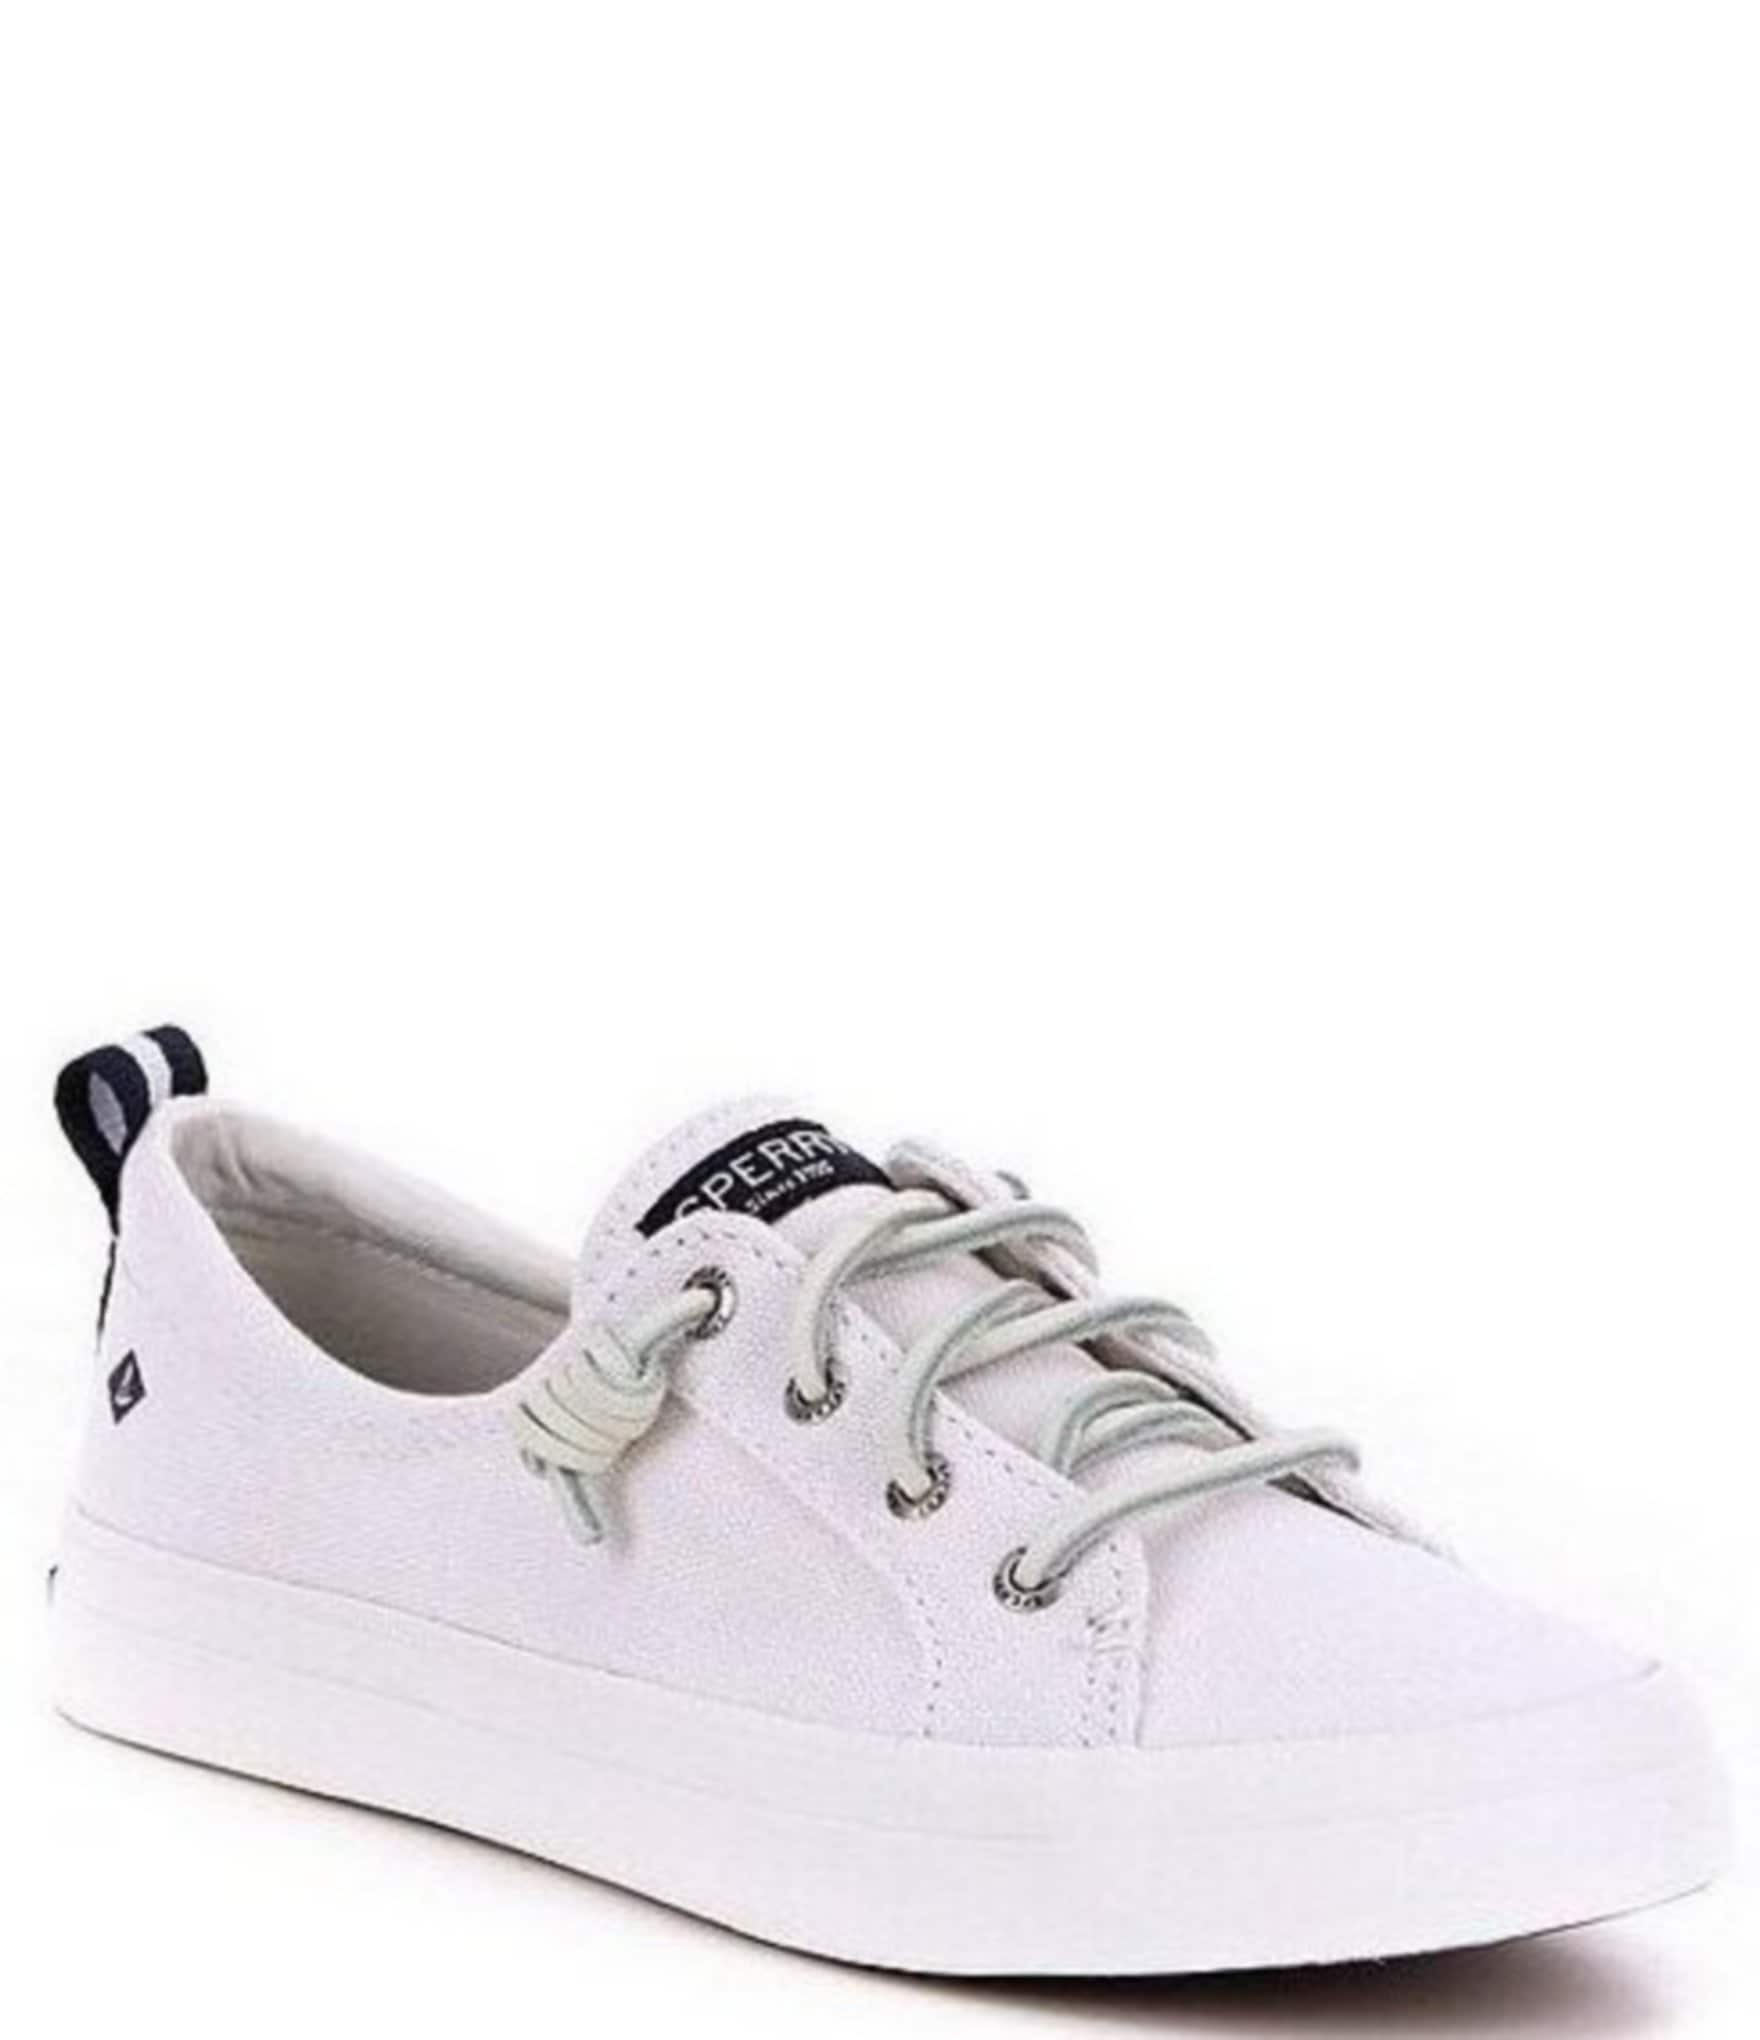 Sperry Top-Sider Women/'s Crest Vibe Bionic Yarn Sn Choose SZ//color